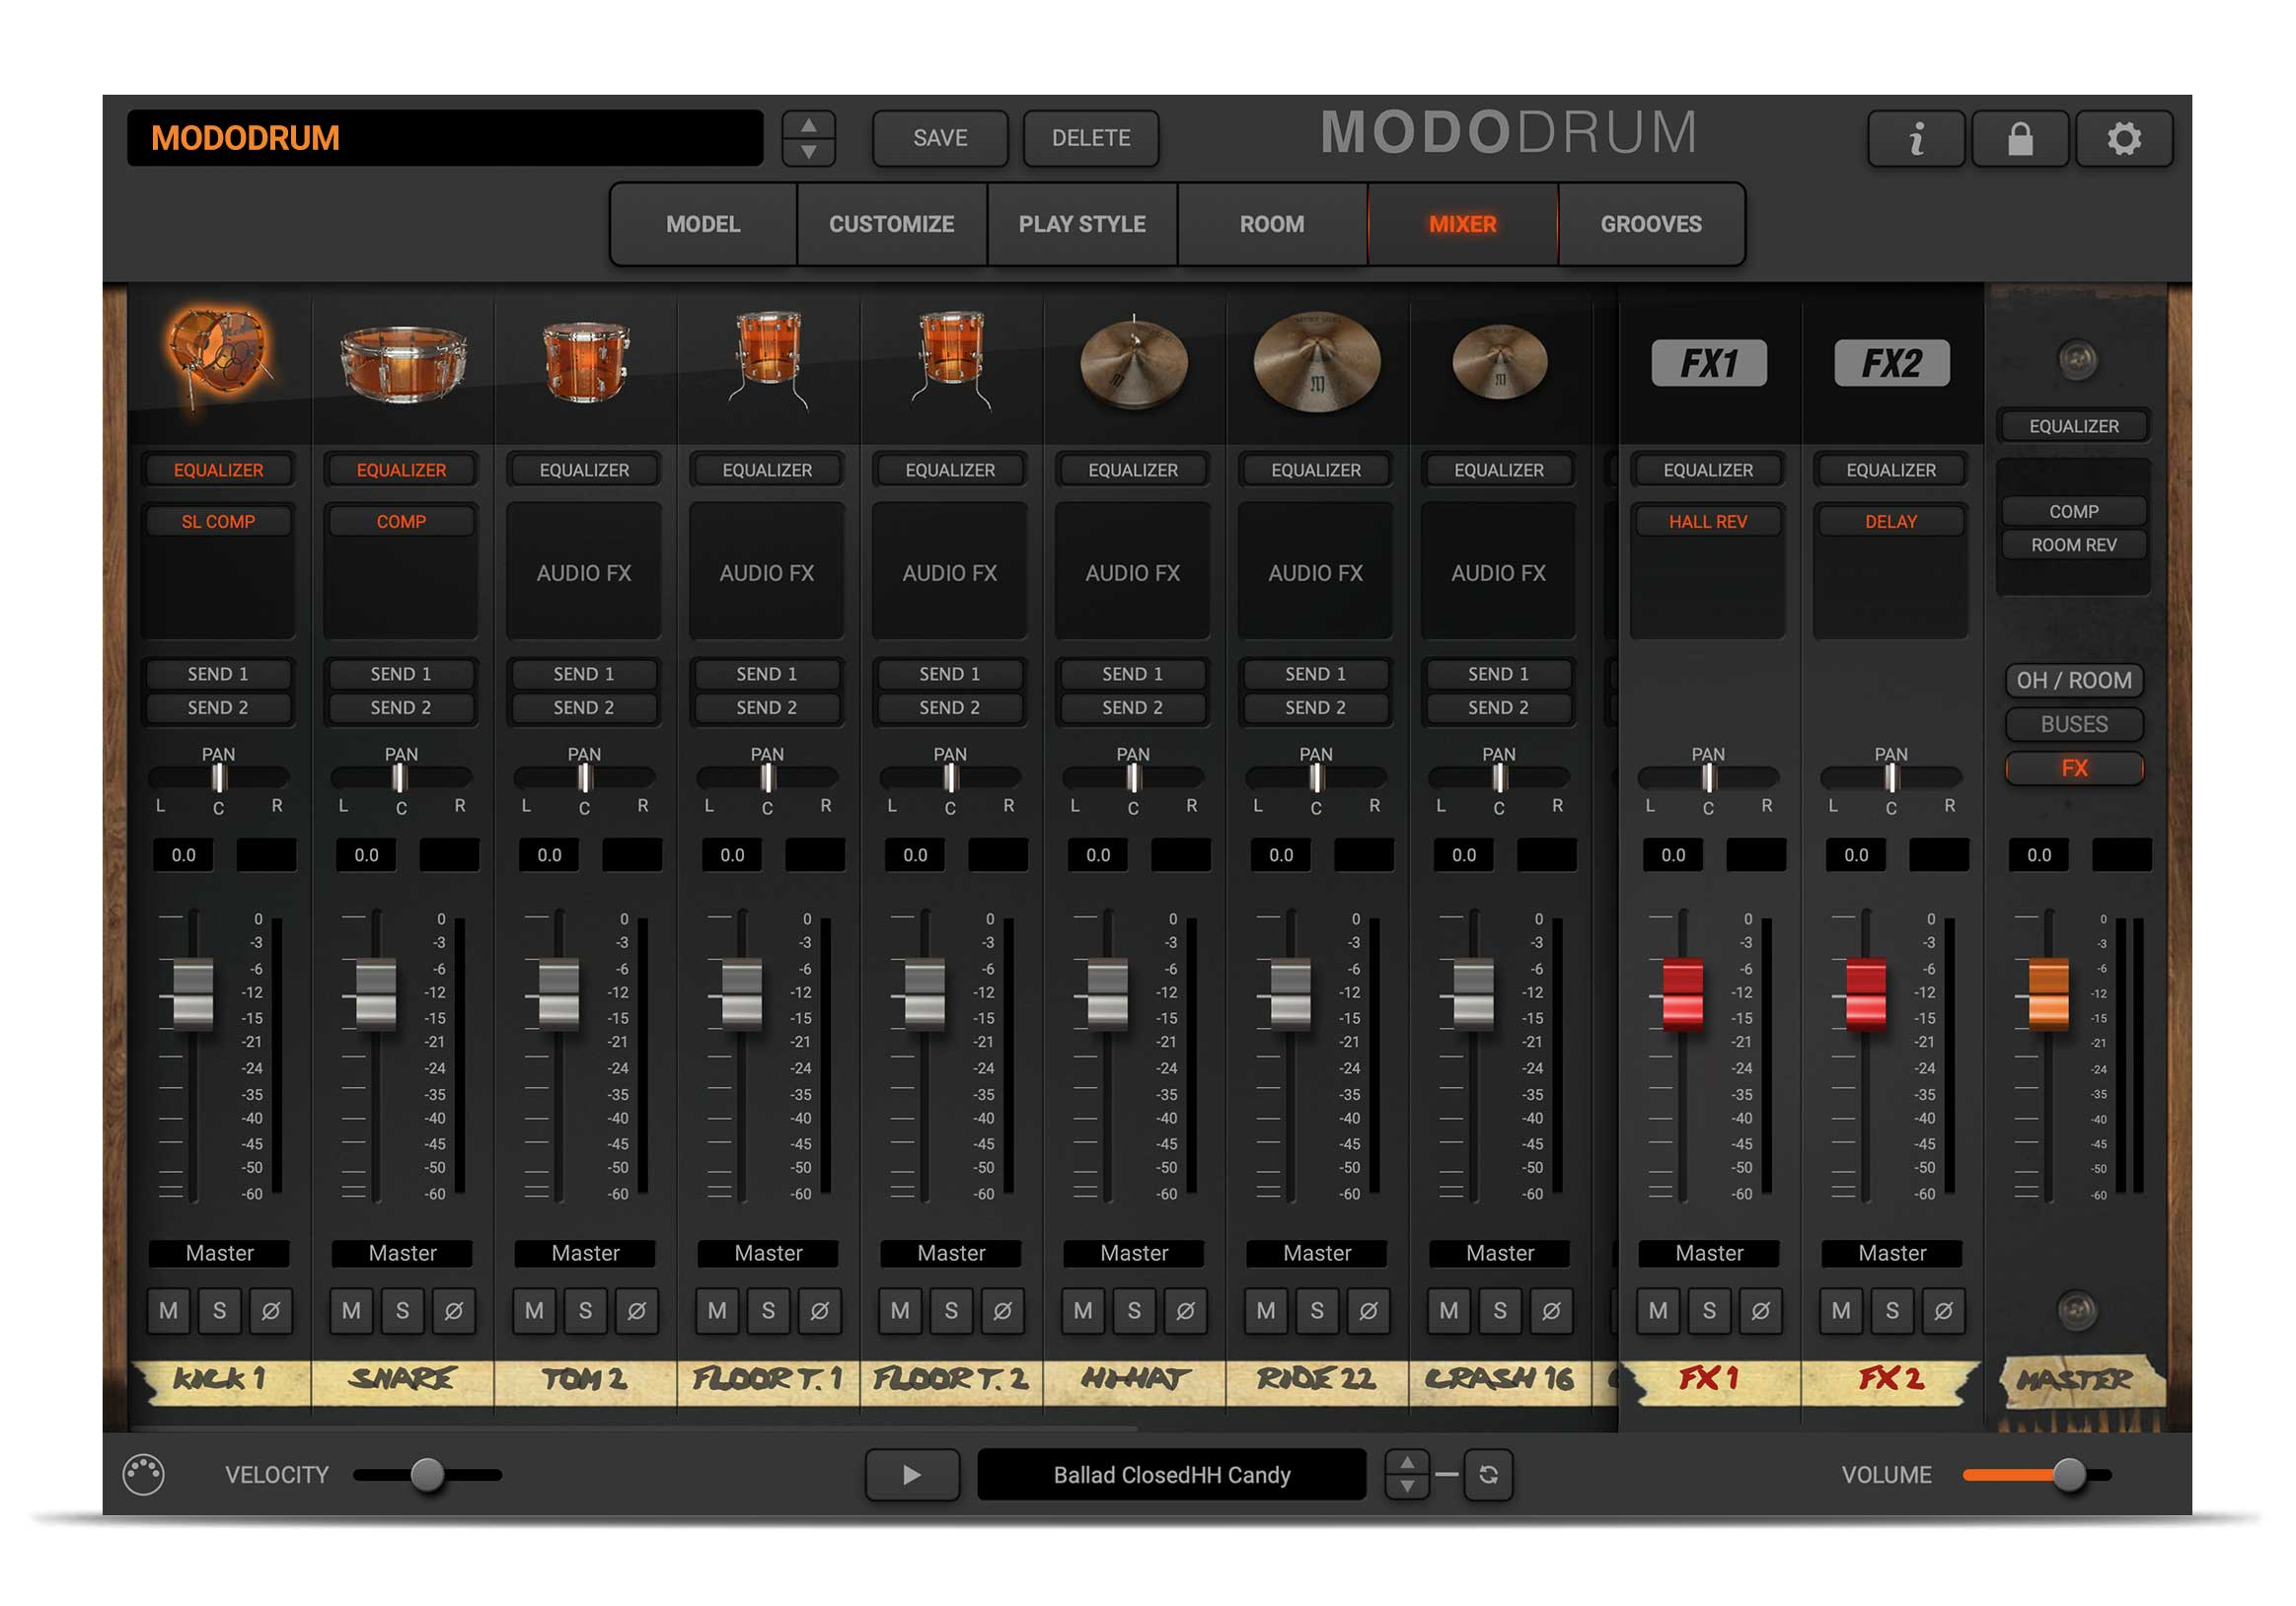 MODO DRUM - Fine tuning made easy